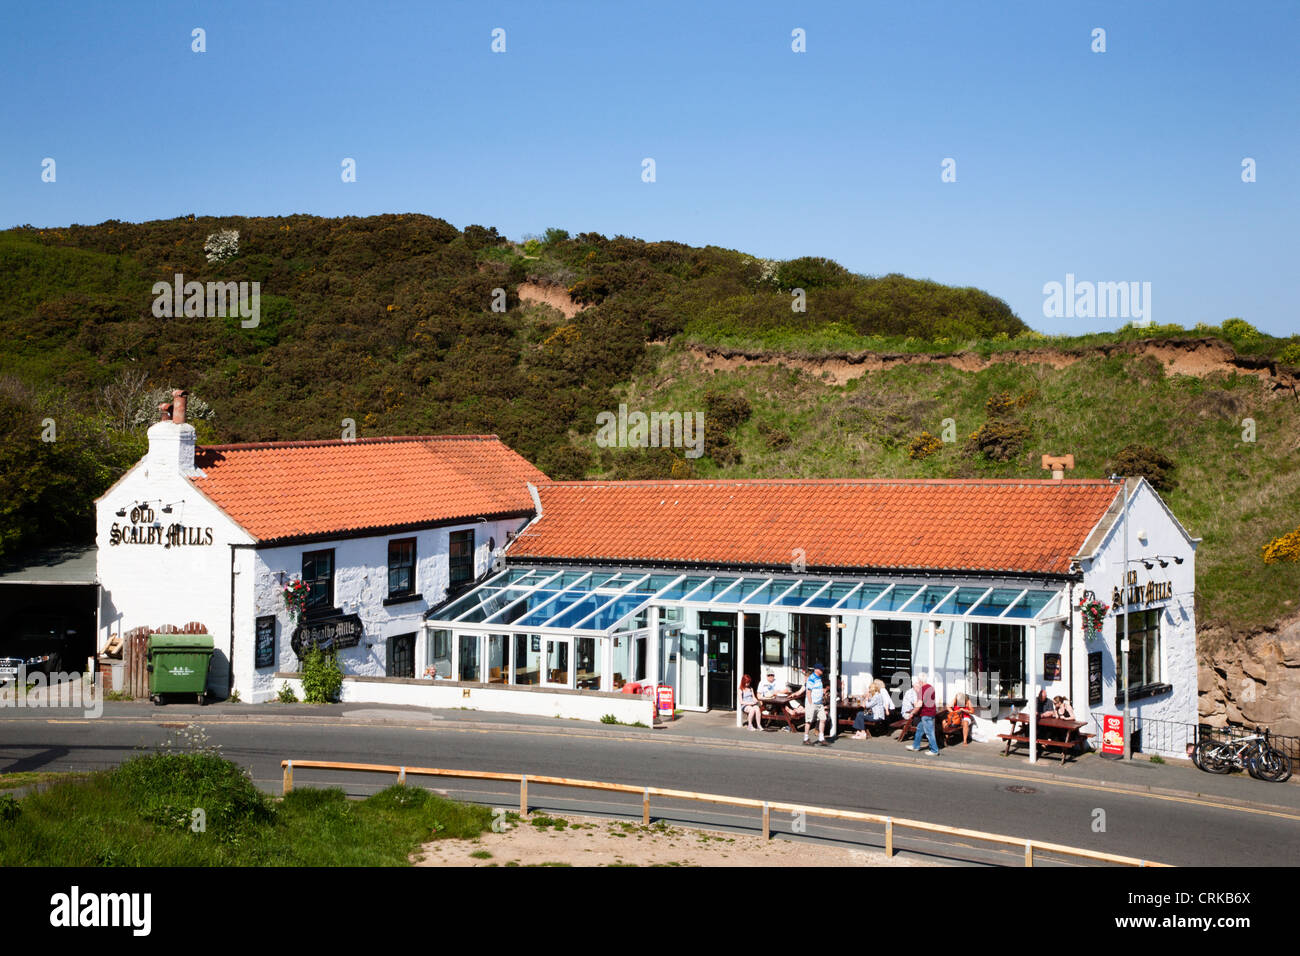 Old Scalby Mills Pub Scarborough North Yorkshire England - Stock Image